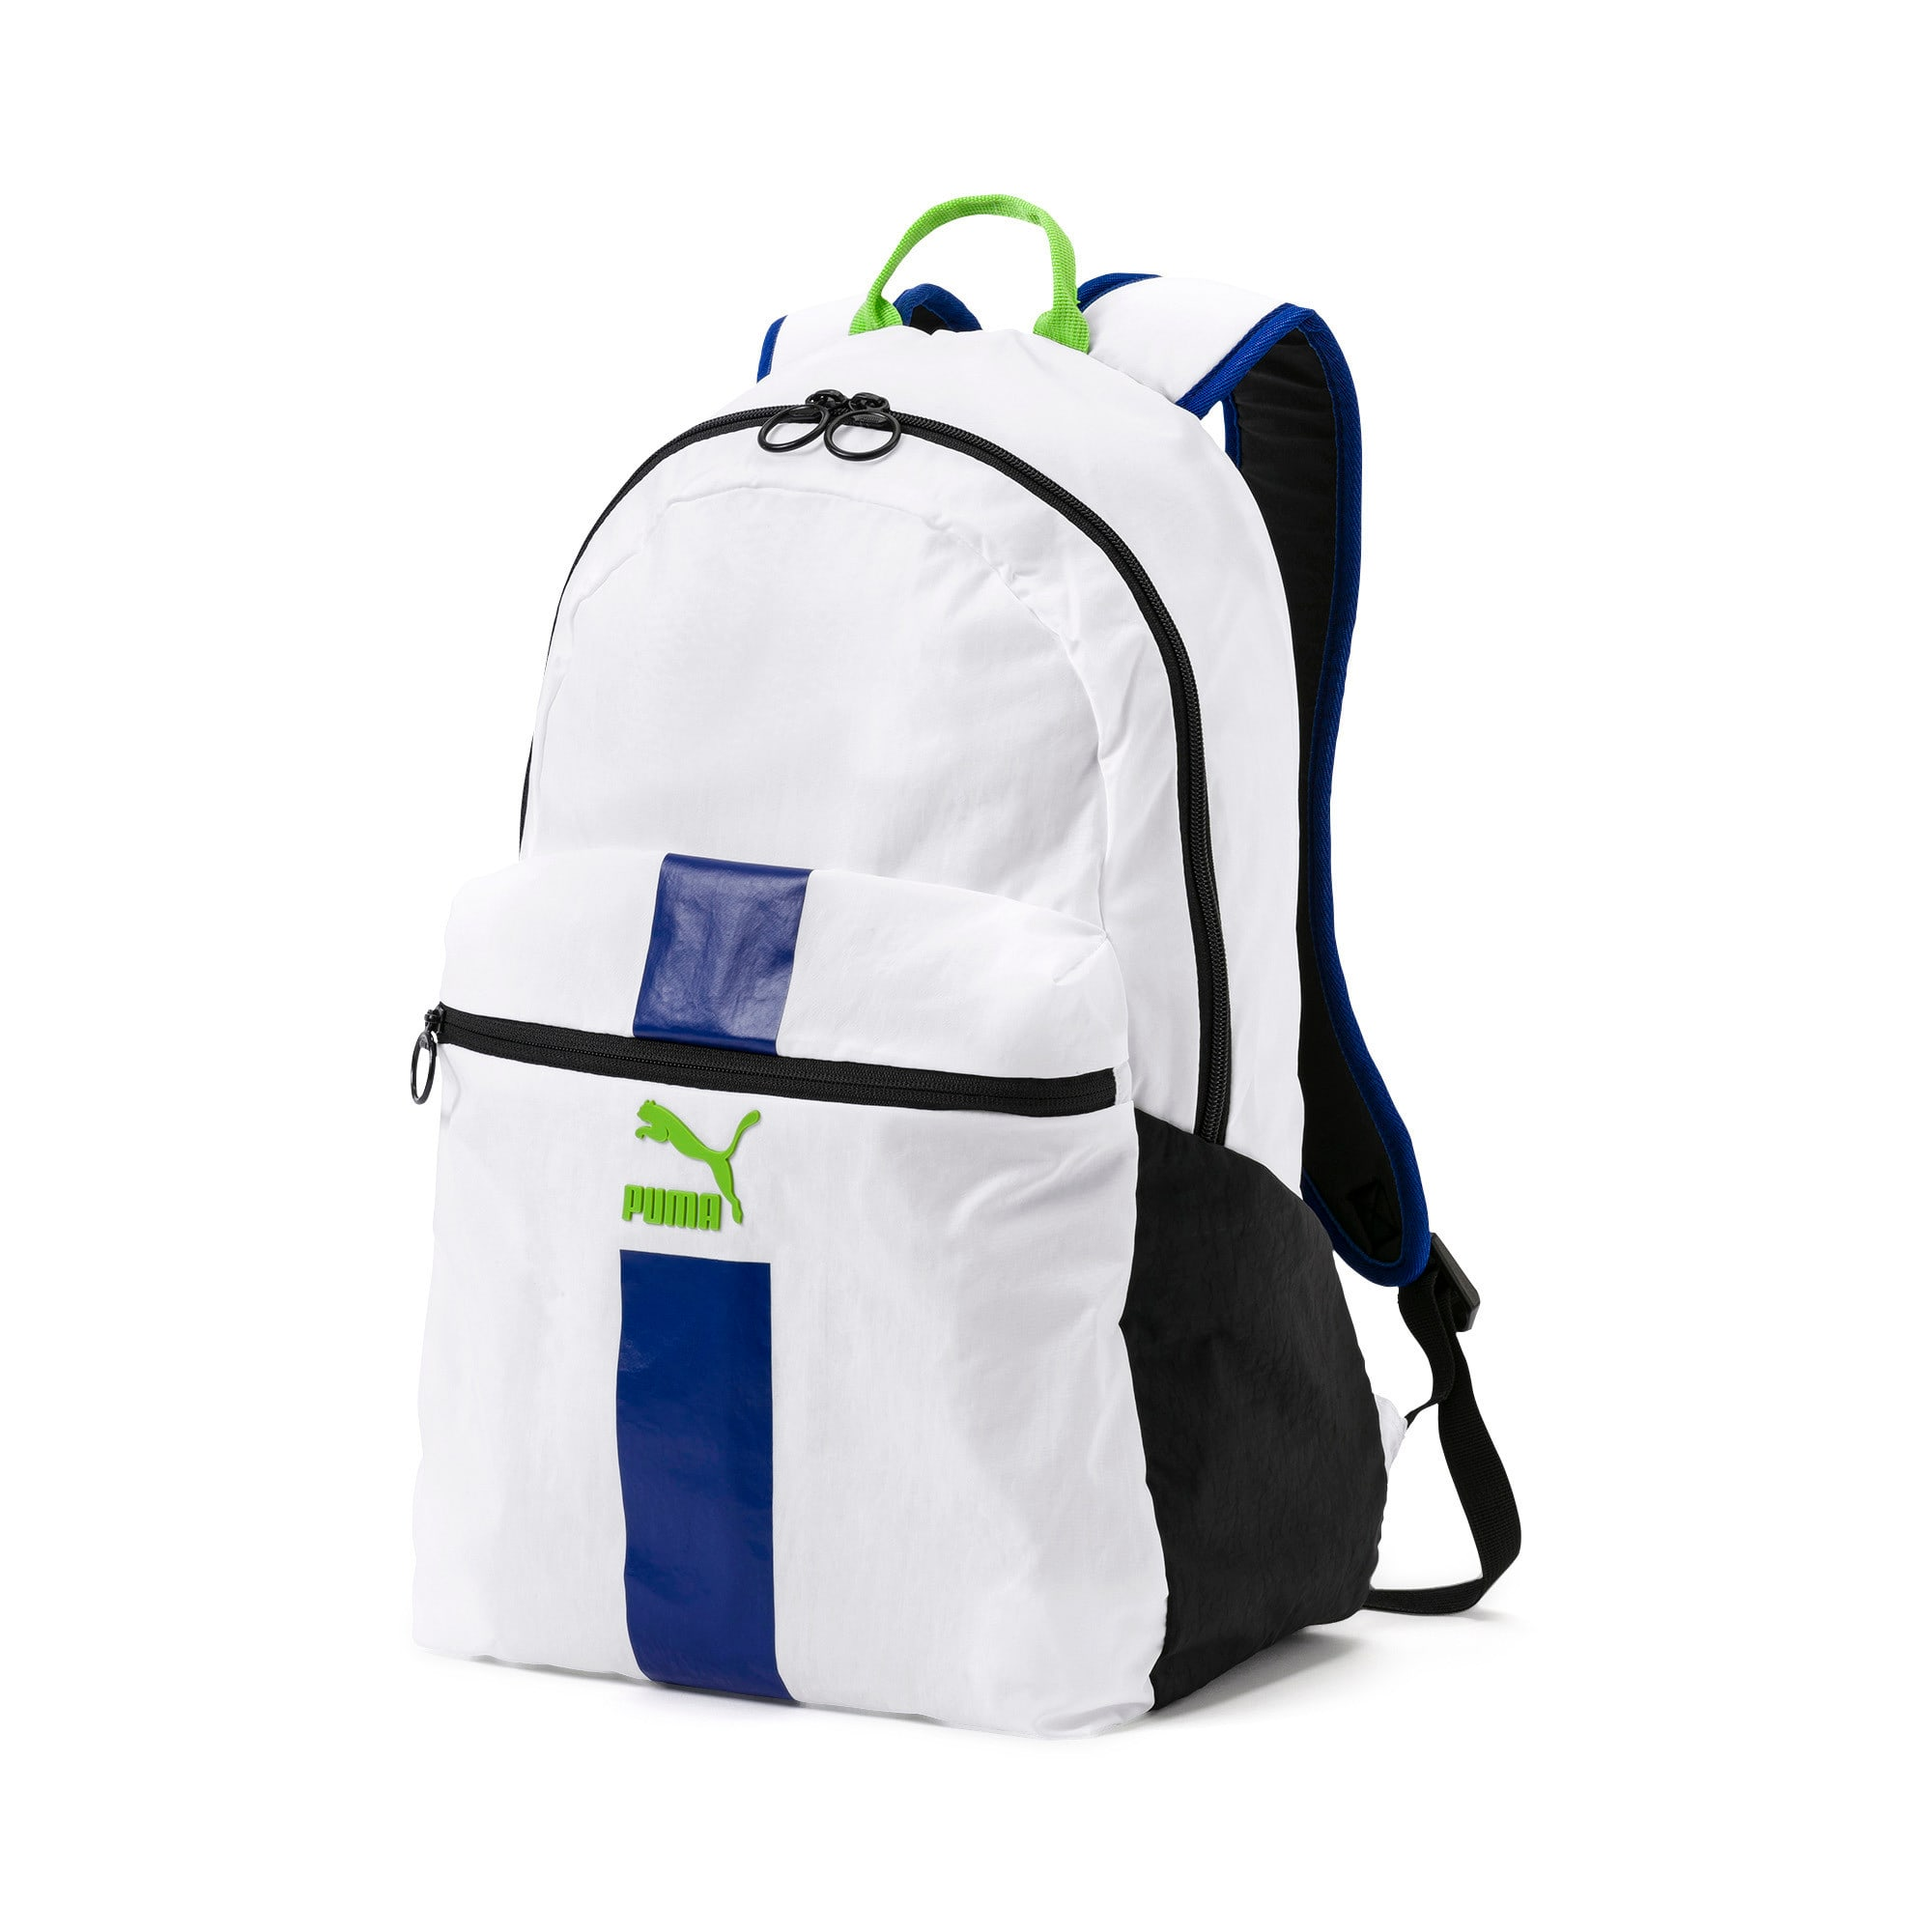 Thumbnail 1 of Originals Daypack, Puma White, medium